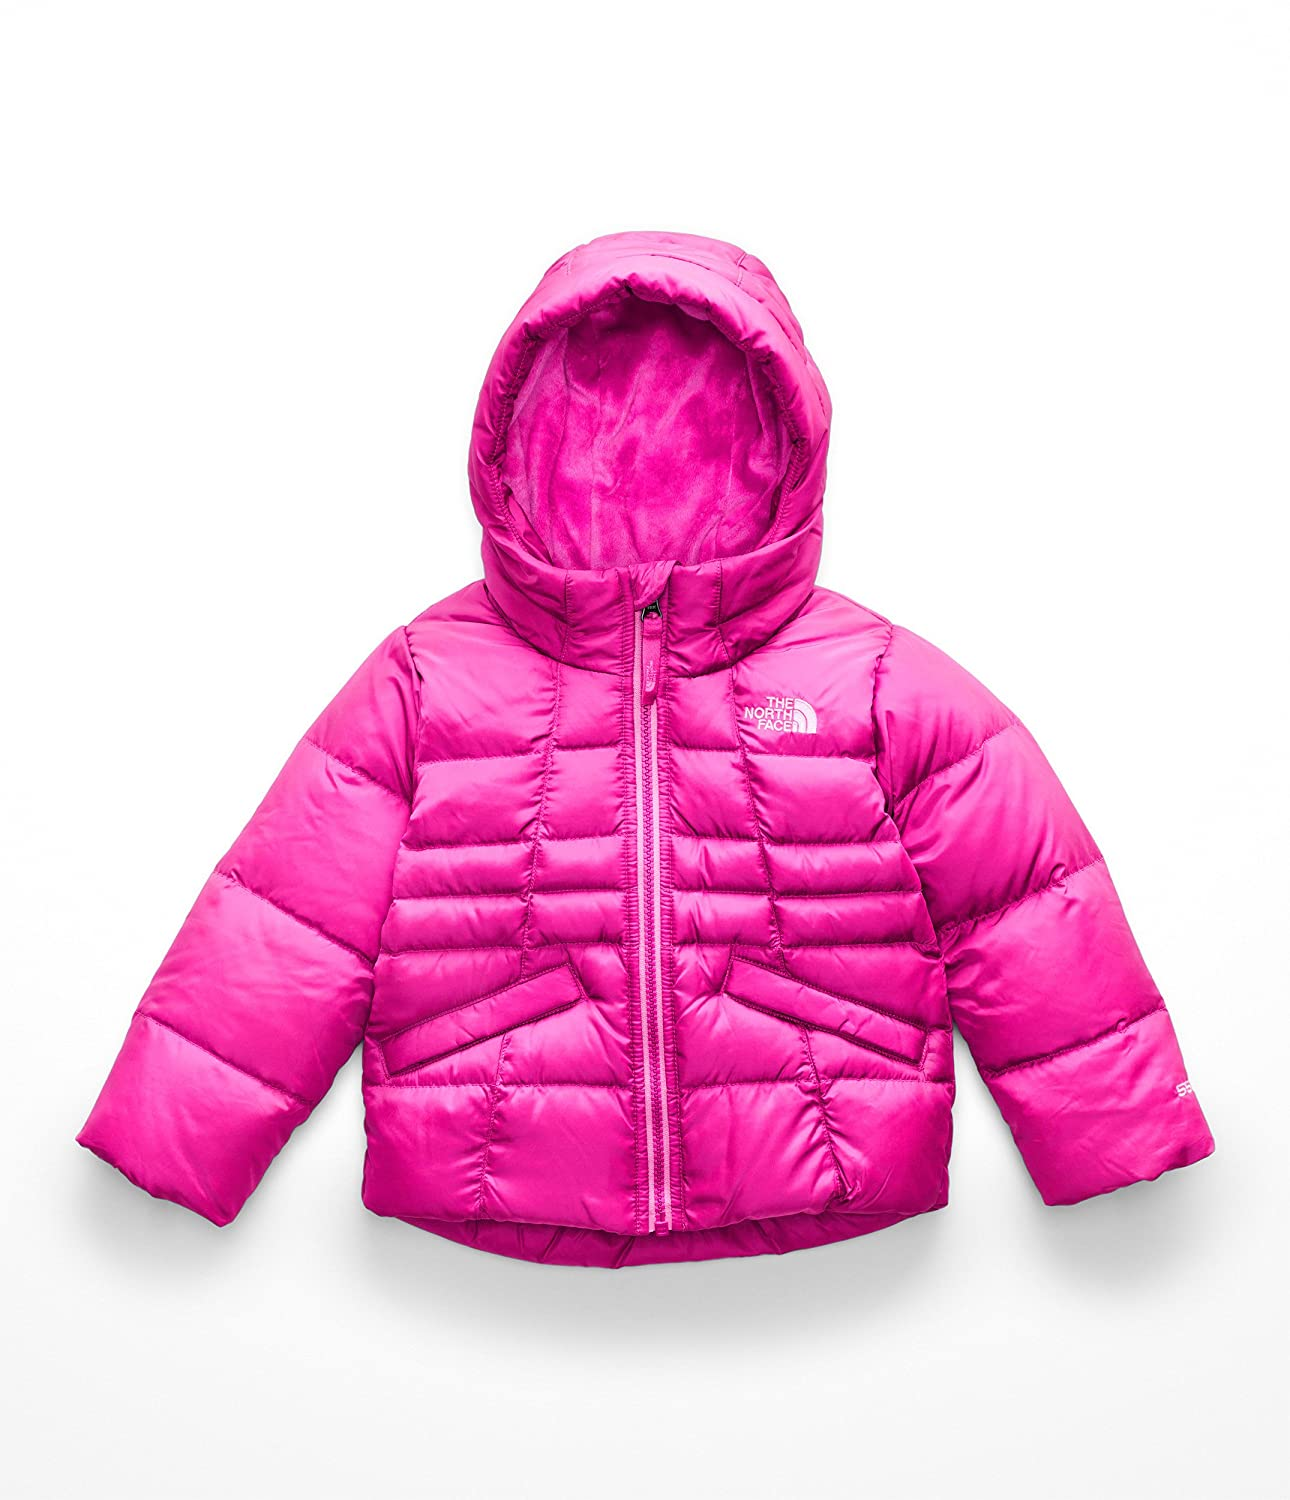 Amazon.com  The North Face Toddler Girl s Moondoggy 2.0 Down Jacket   Clothing 8615c6d20